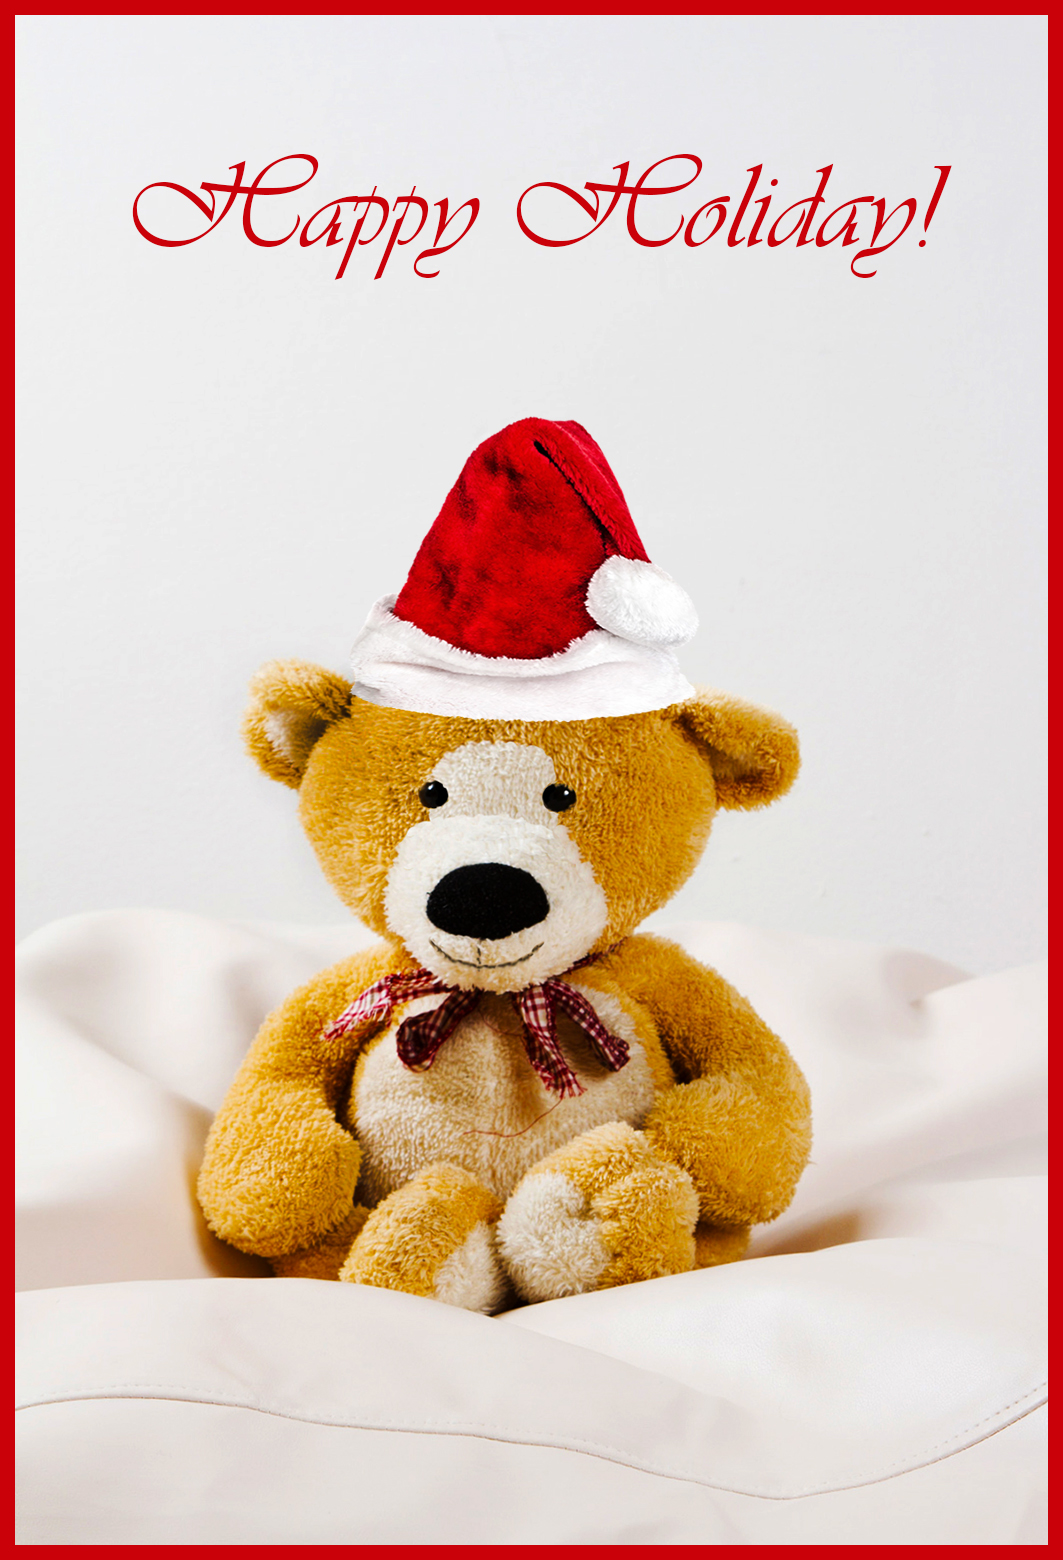 printable happy holiday card with cute Teddy bear